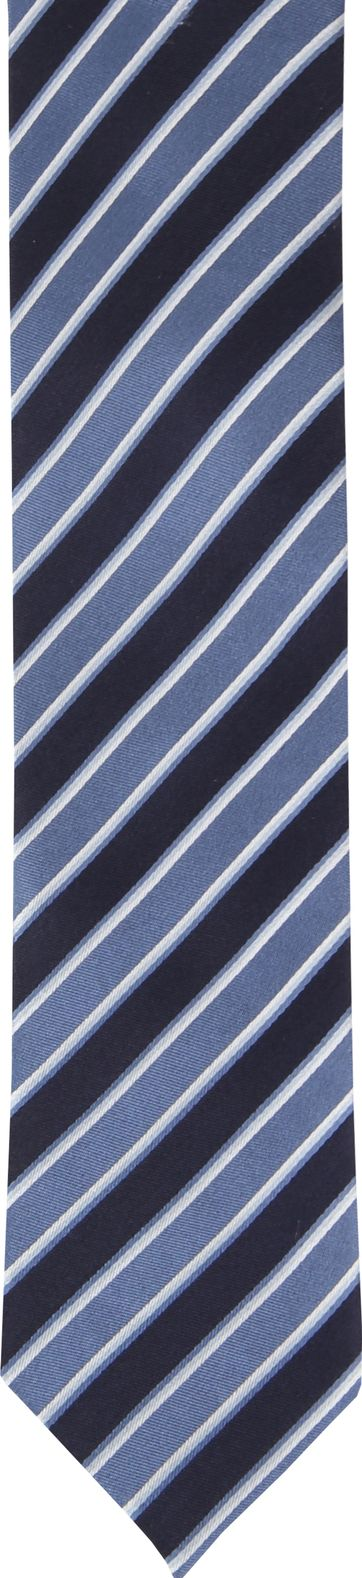 Silk Tie Stripes F82-12